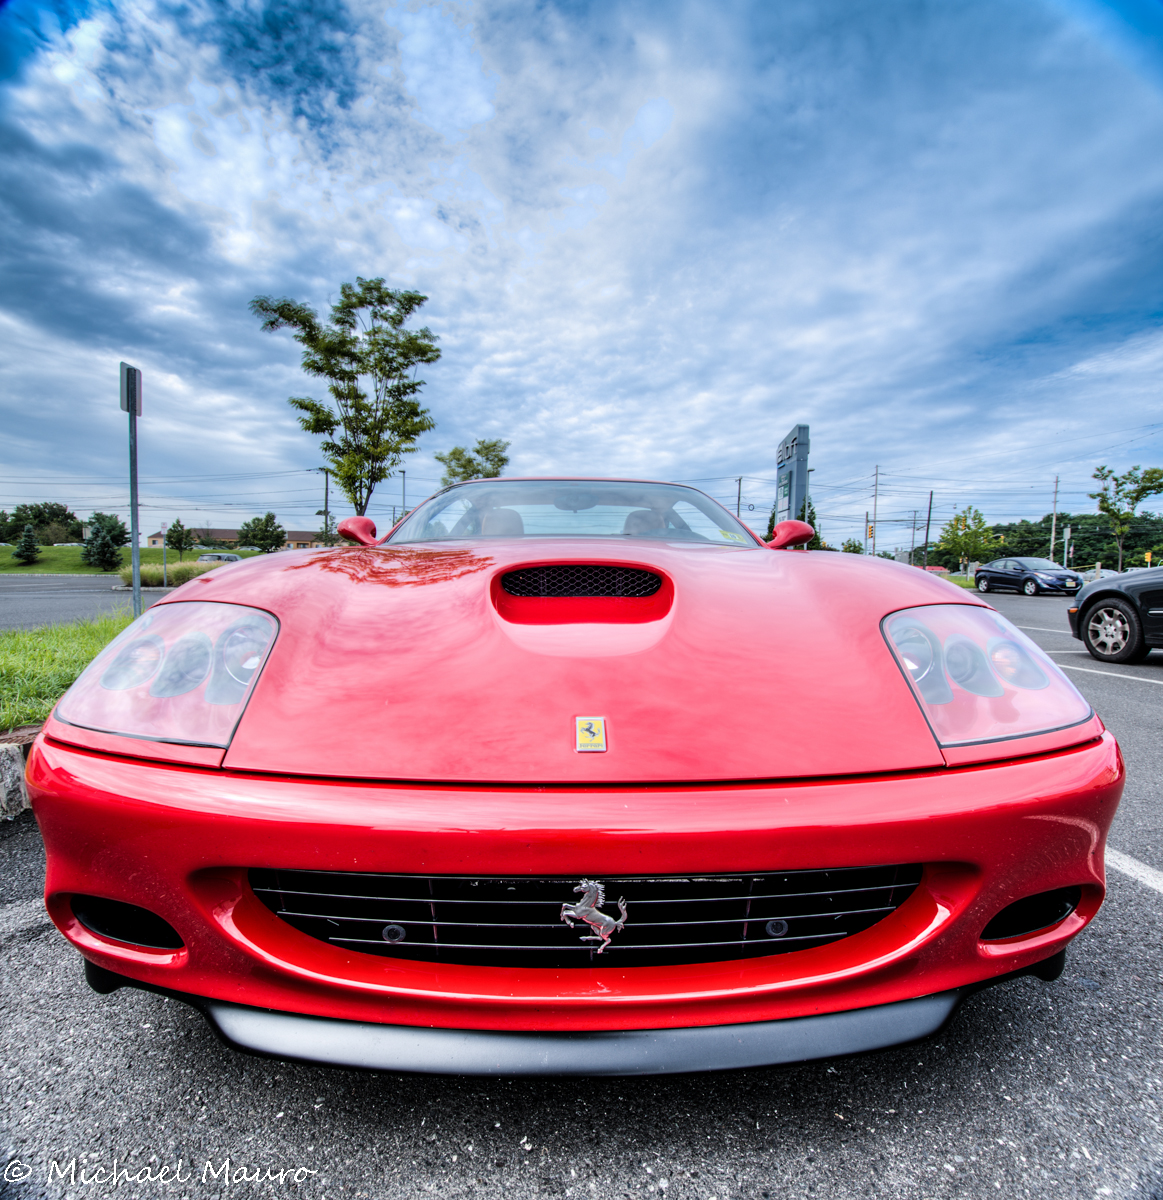 Ferrari 575  Cars and Coffee Mt Laurel High Octane South Jersey.jpg